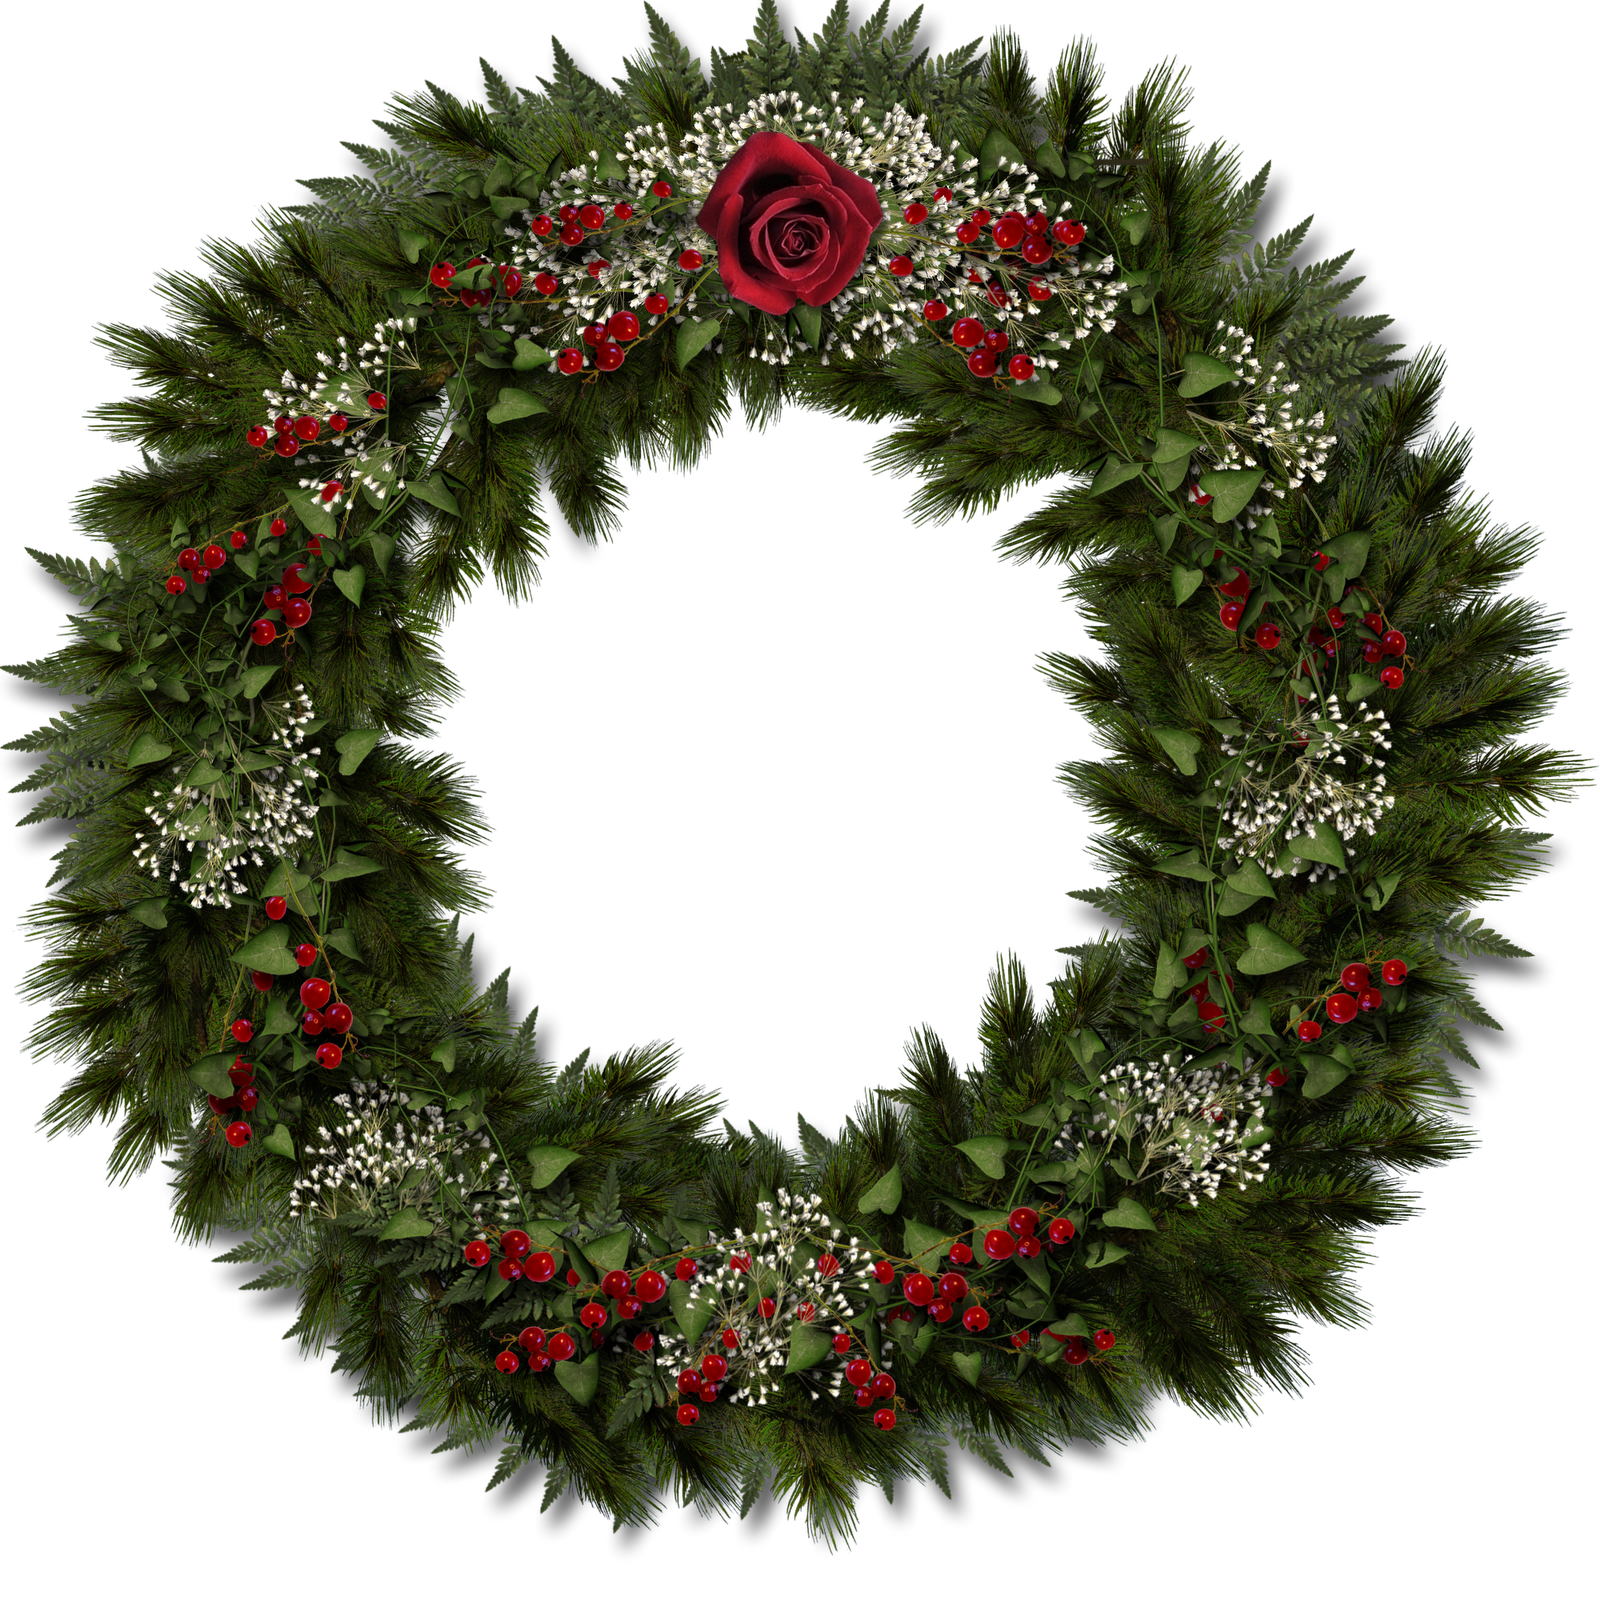 Christmas Wreath Png Transparent.Christmas Wreath Transparent Png Clipart Free Download Ywd